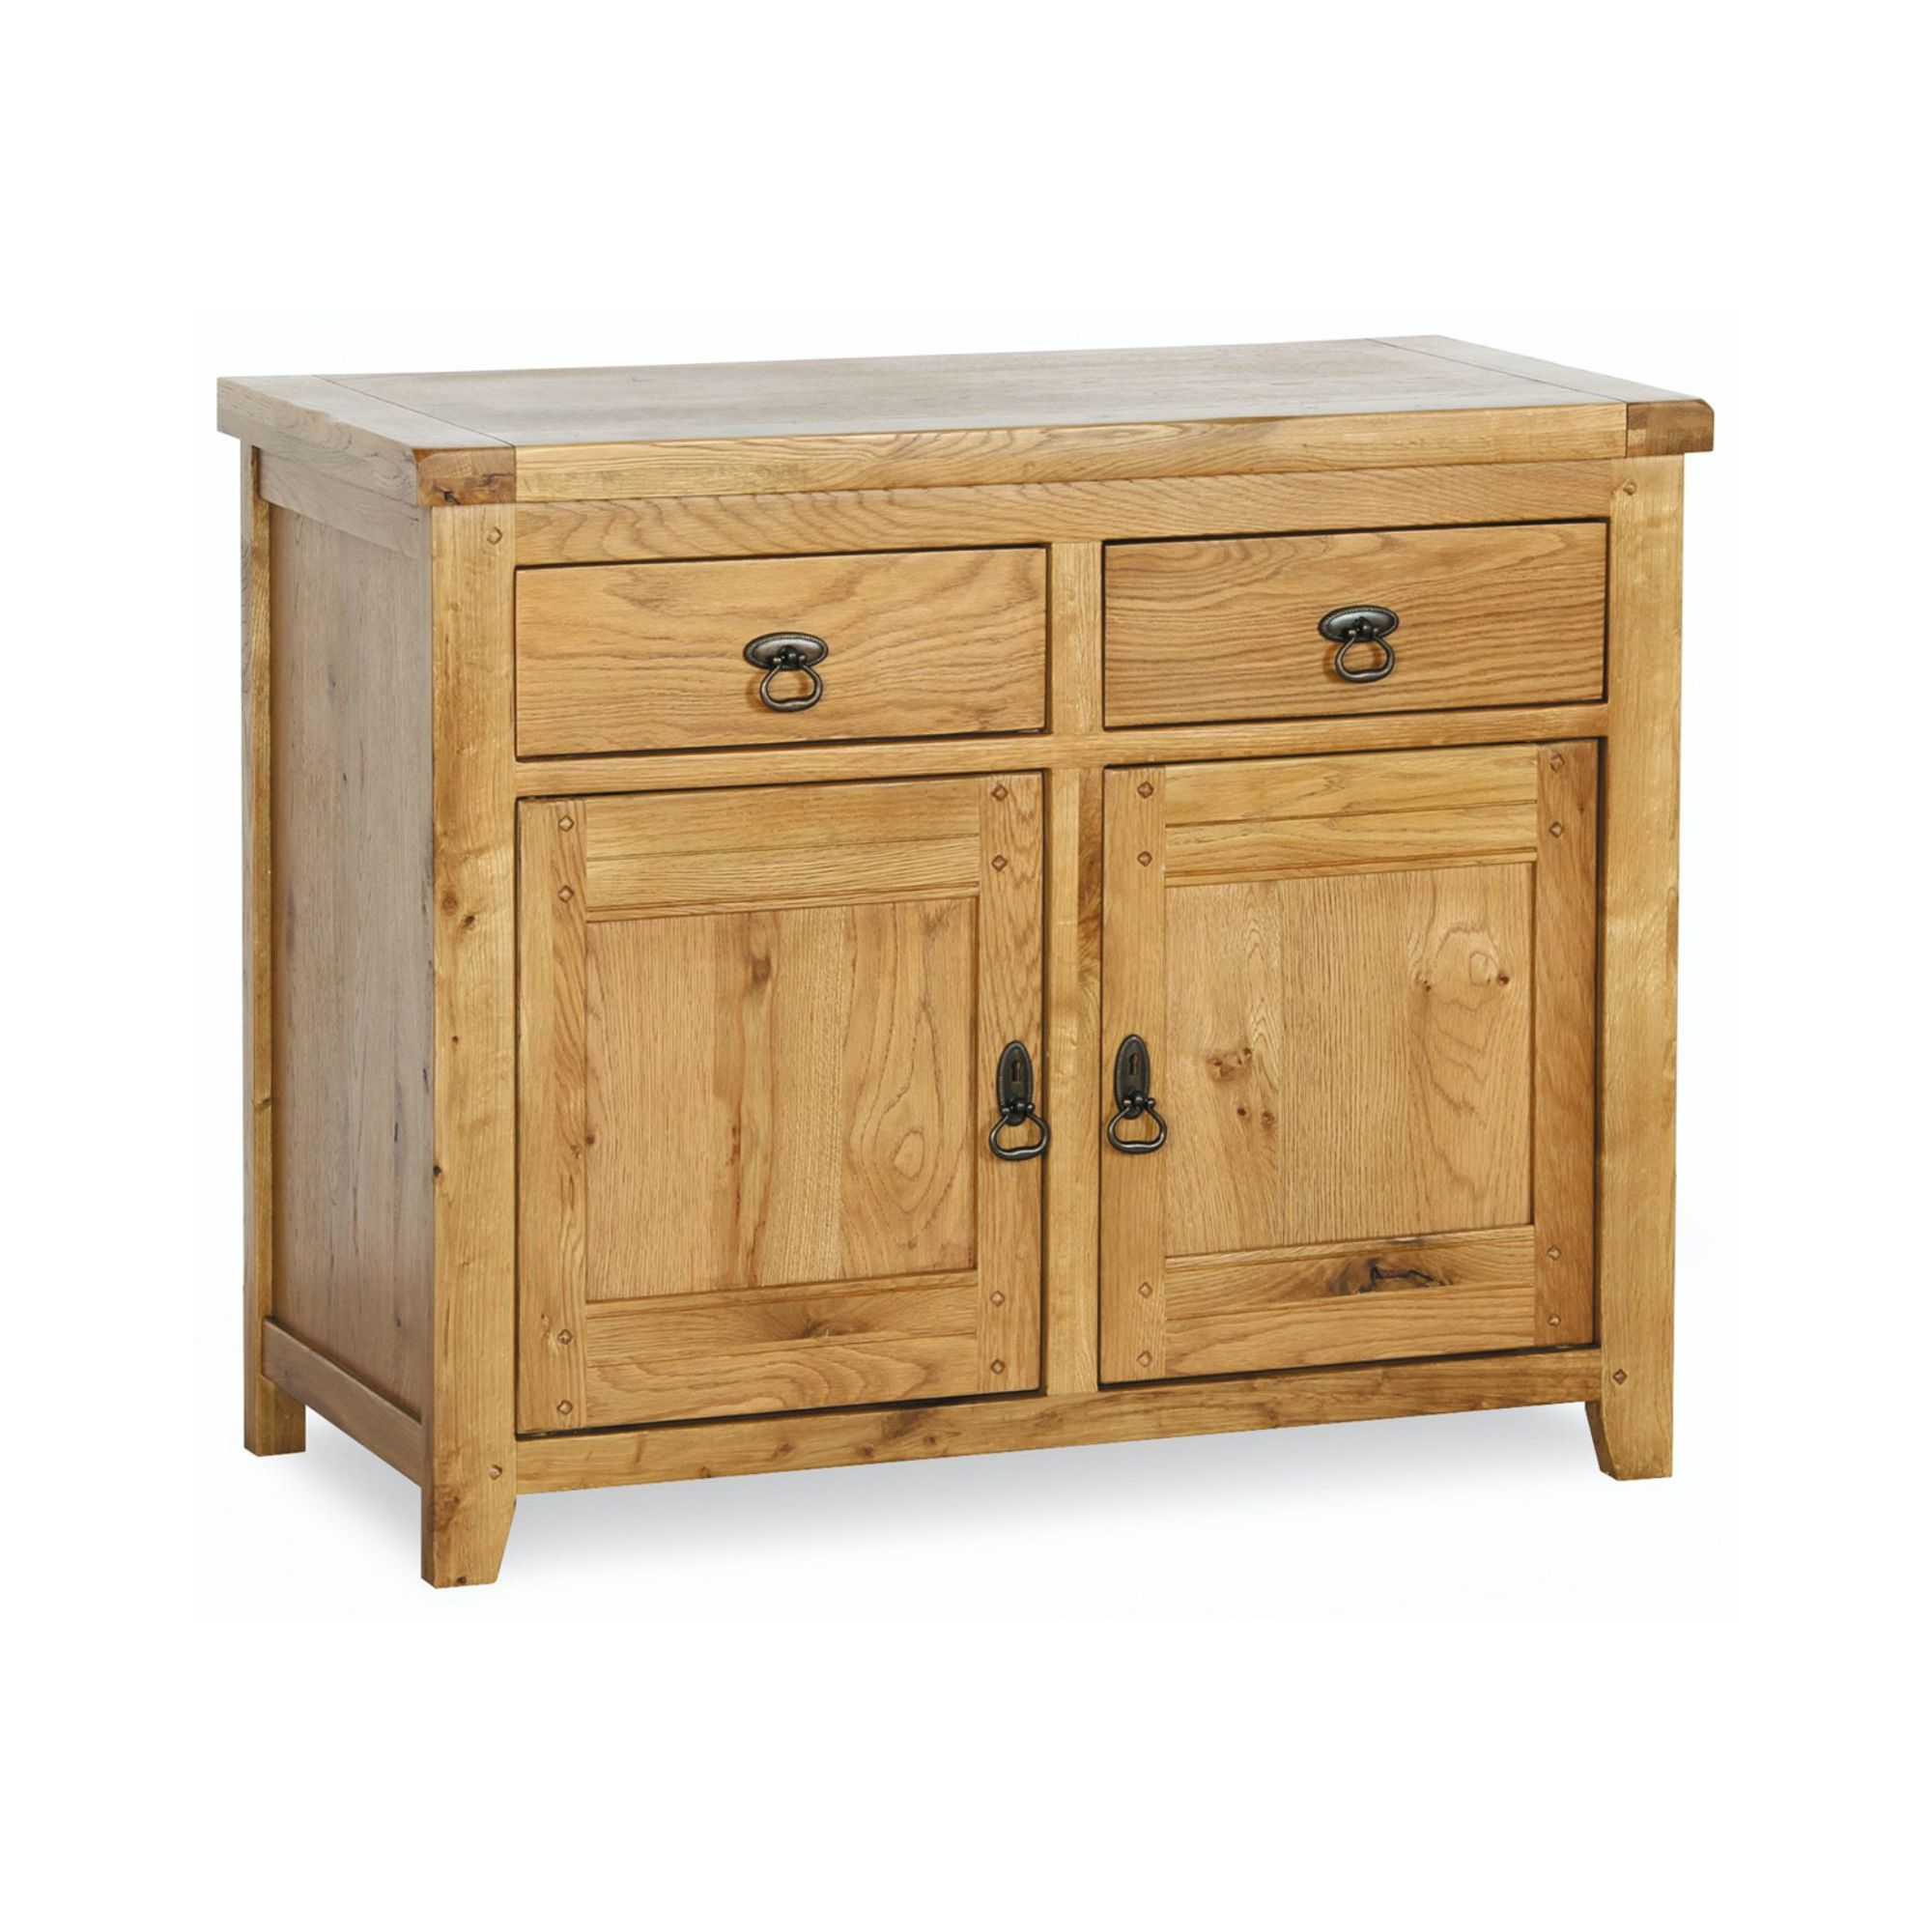 Kelburn Furniture Veneto Rustic Oak 2 Door Sideboard at Tesco Direct